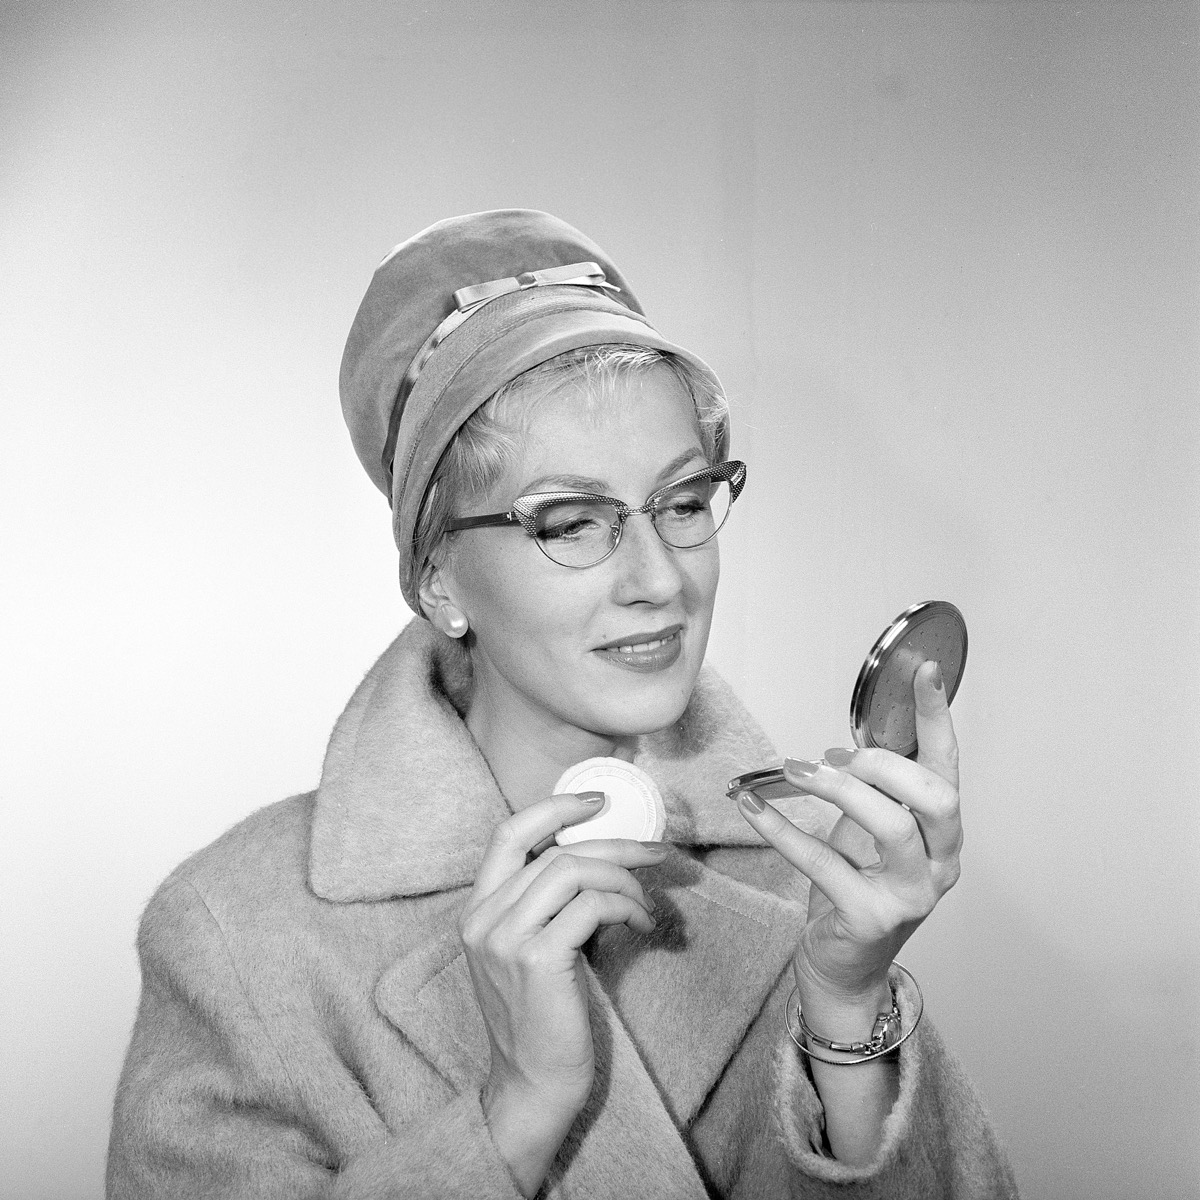 1950s makeup. A young woman is looking at herself in her pocket mirror and improves on her makeup. She is wearing a fashionable hat, typical 50s glasses and a coat. 1950s